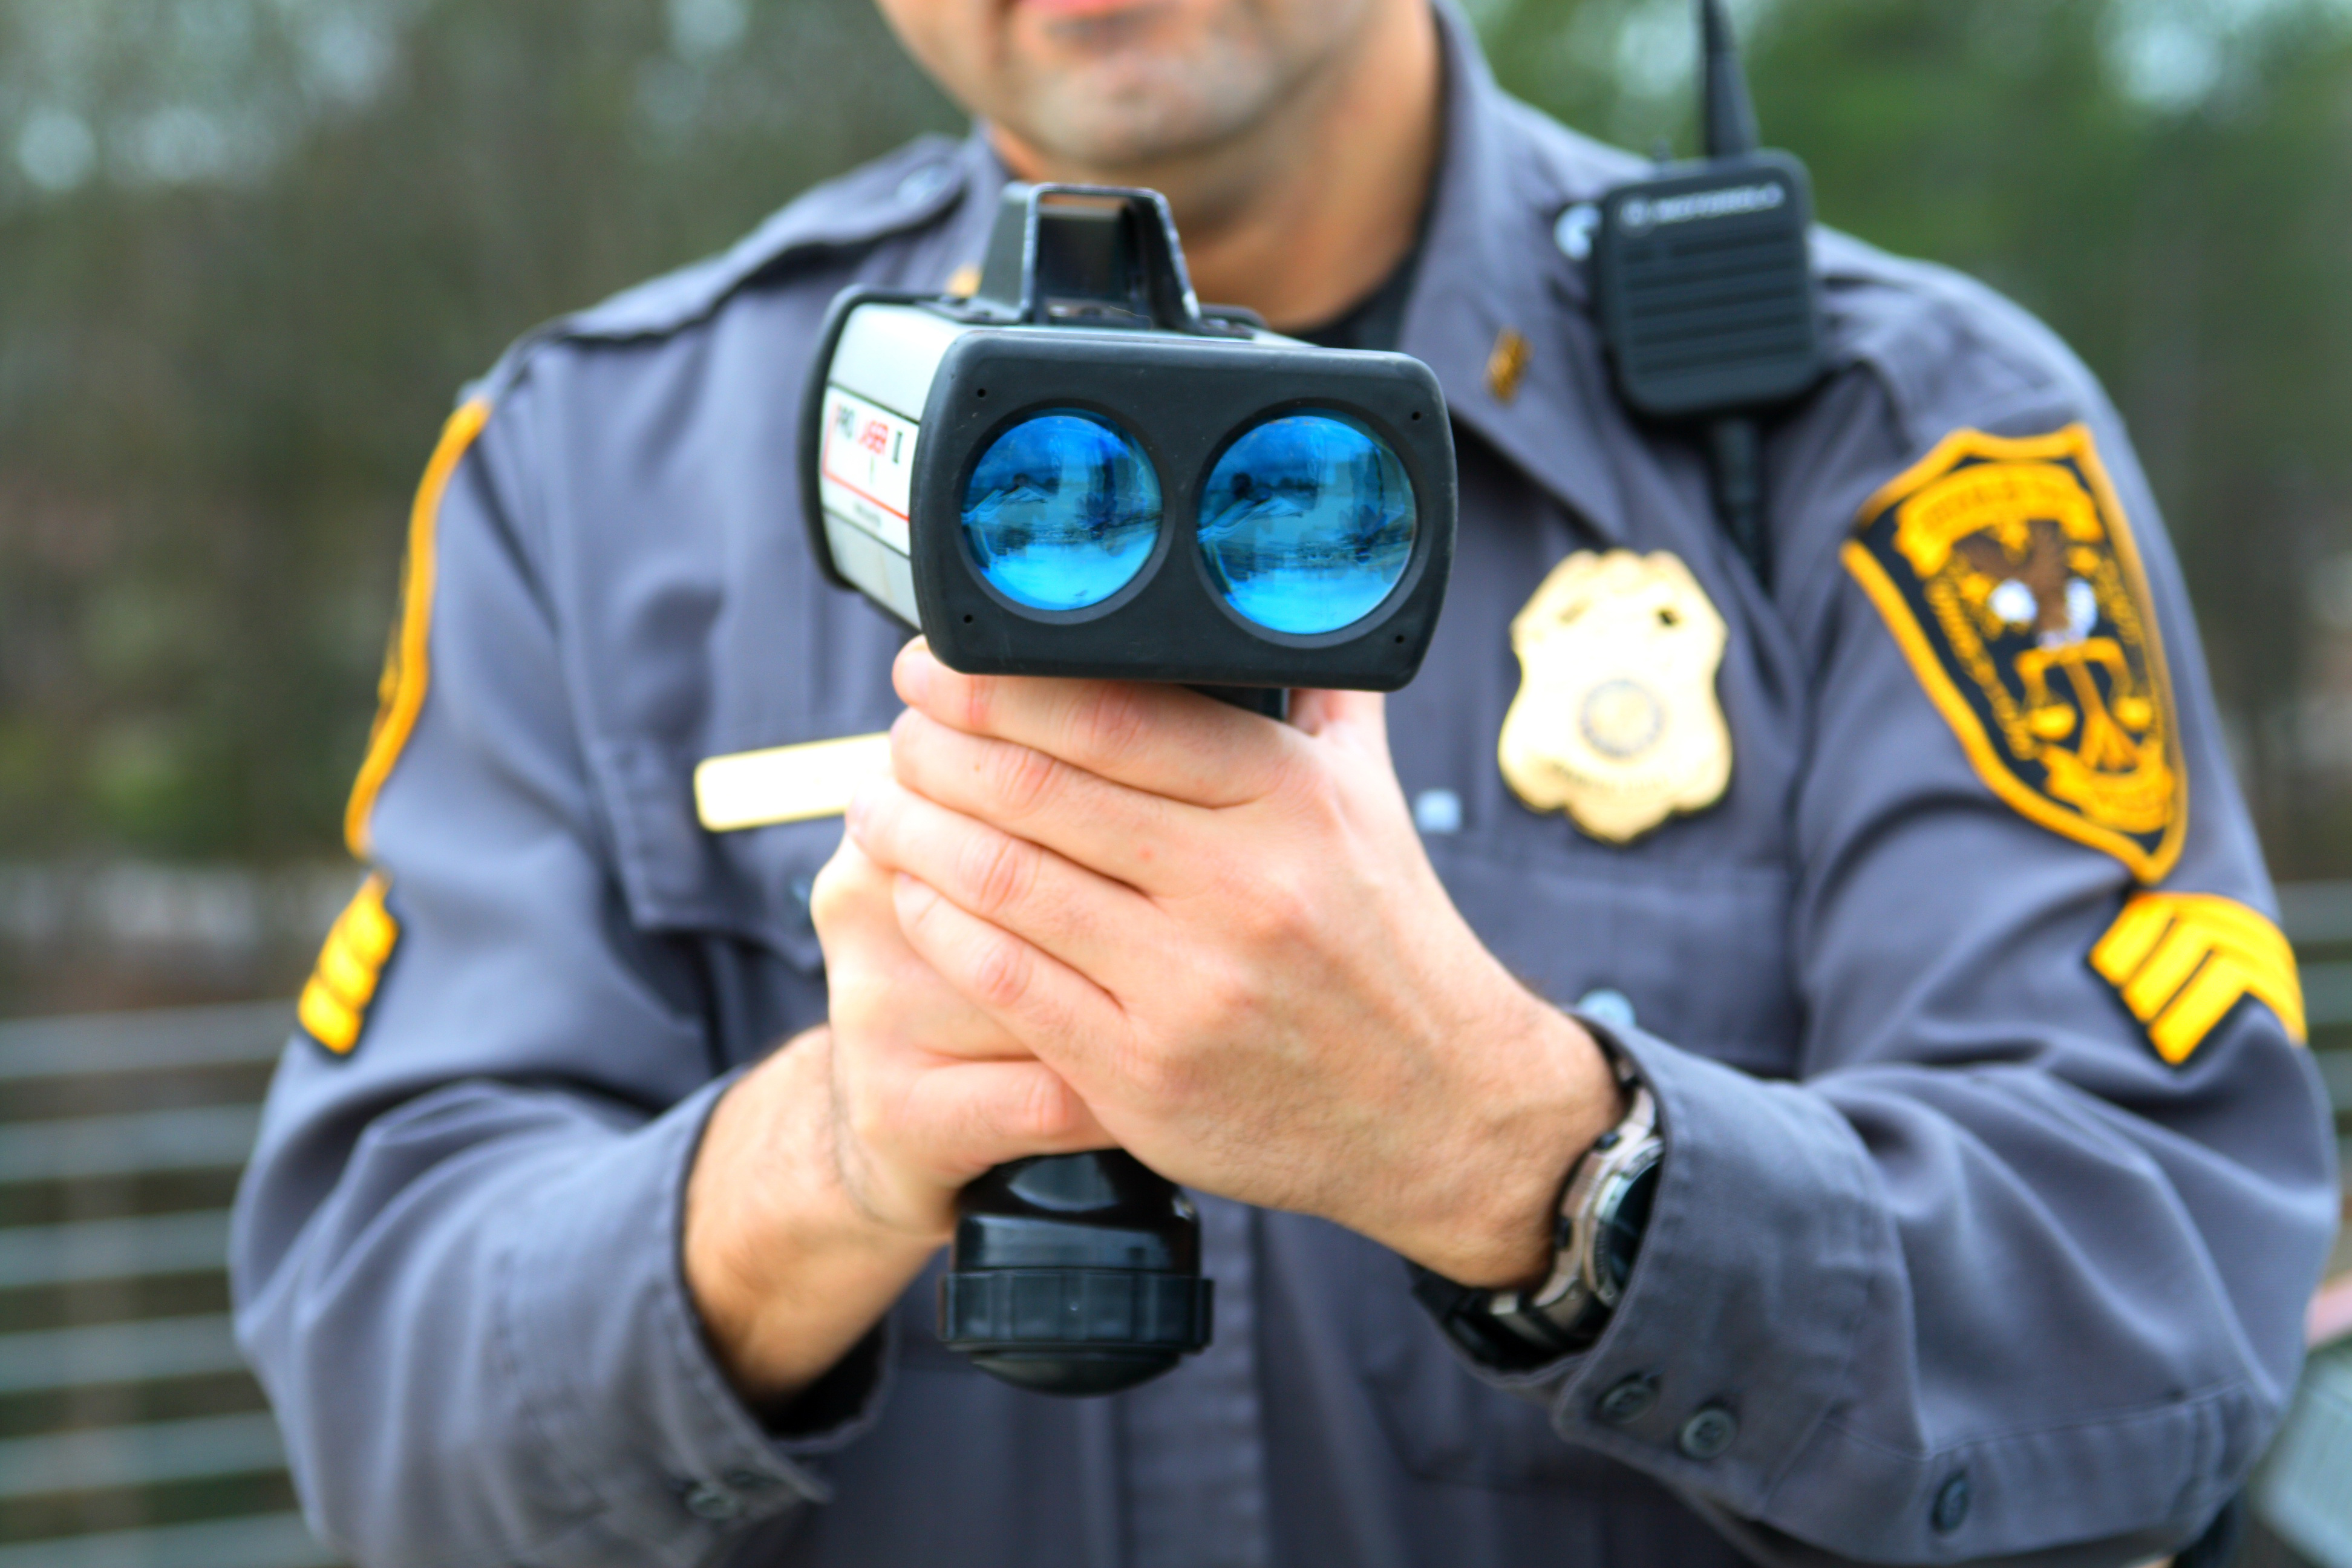 Getting a Speeding Ticket is Not an Emergency